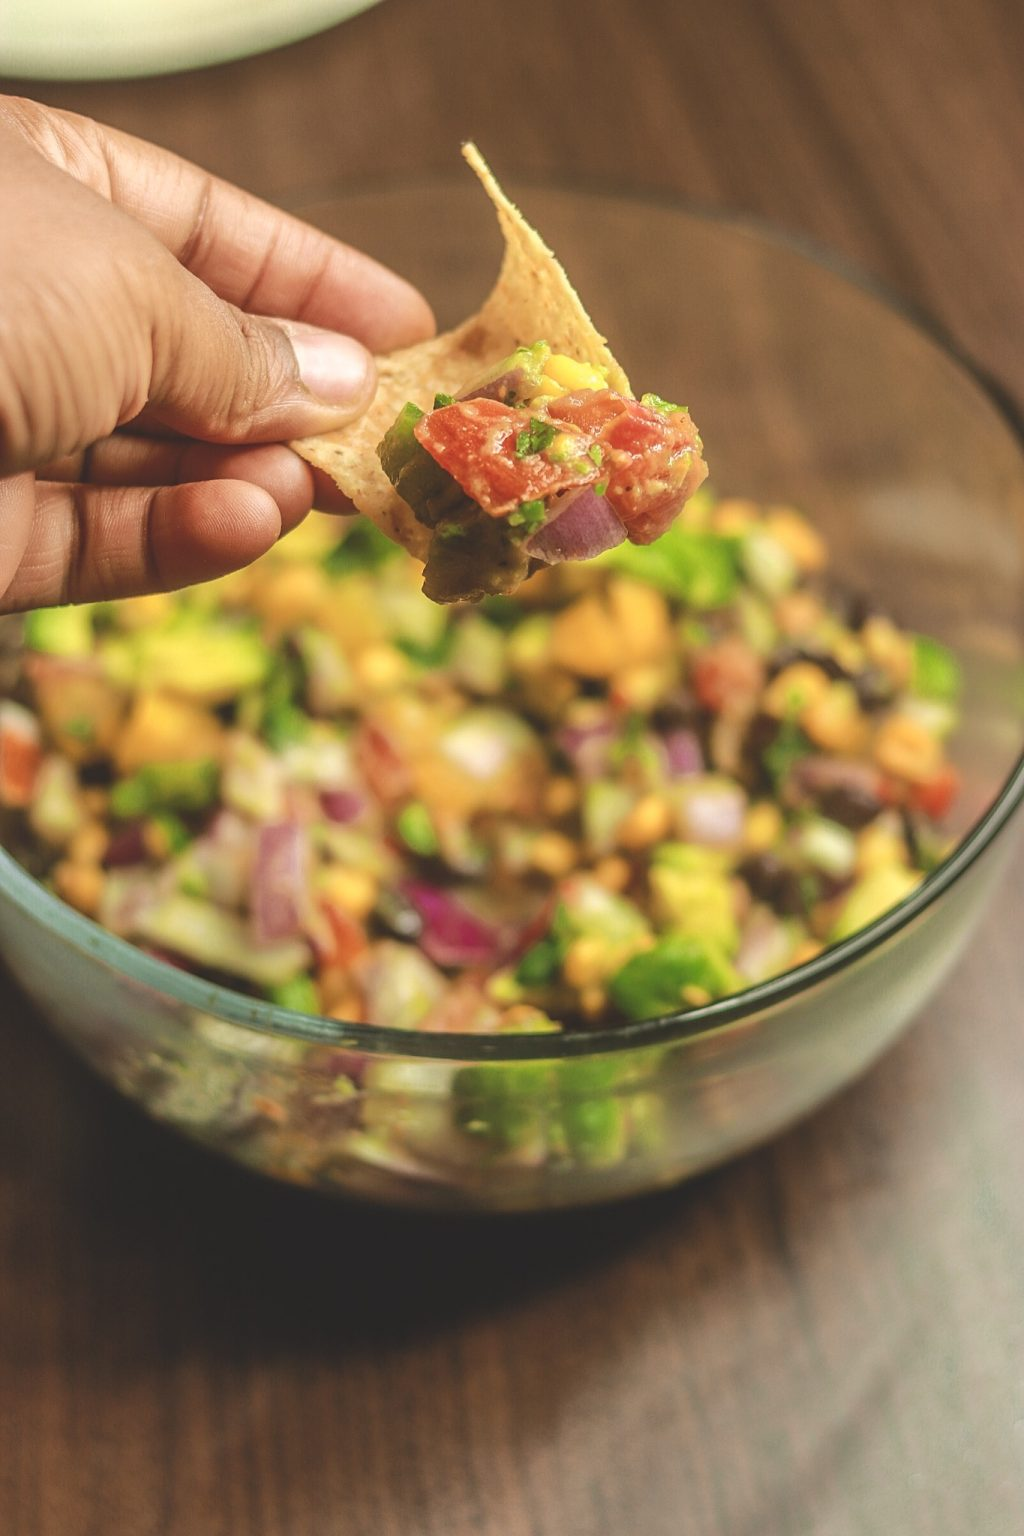 Cowboy Caviar Recipe 2490 1024x1536 - Delicious Chicken Cowboy Caviar Recipe For The Dip Lover